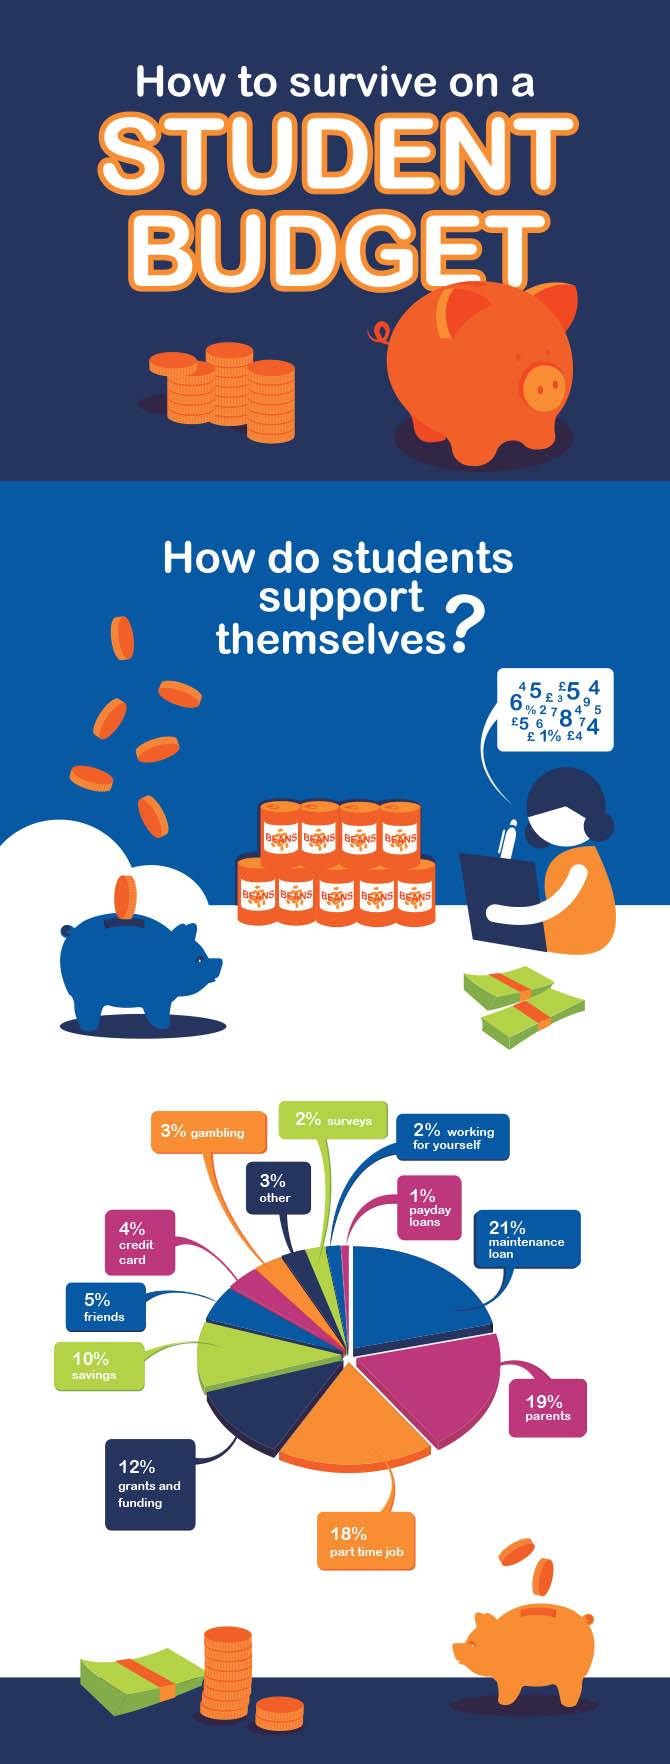 How to Survive on a Student Budget by B&M Bargains